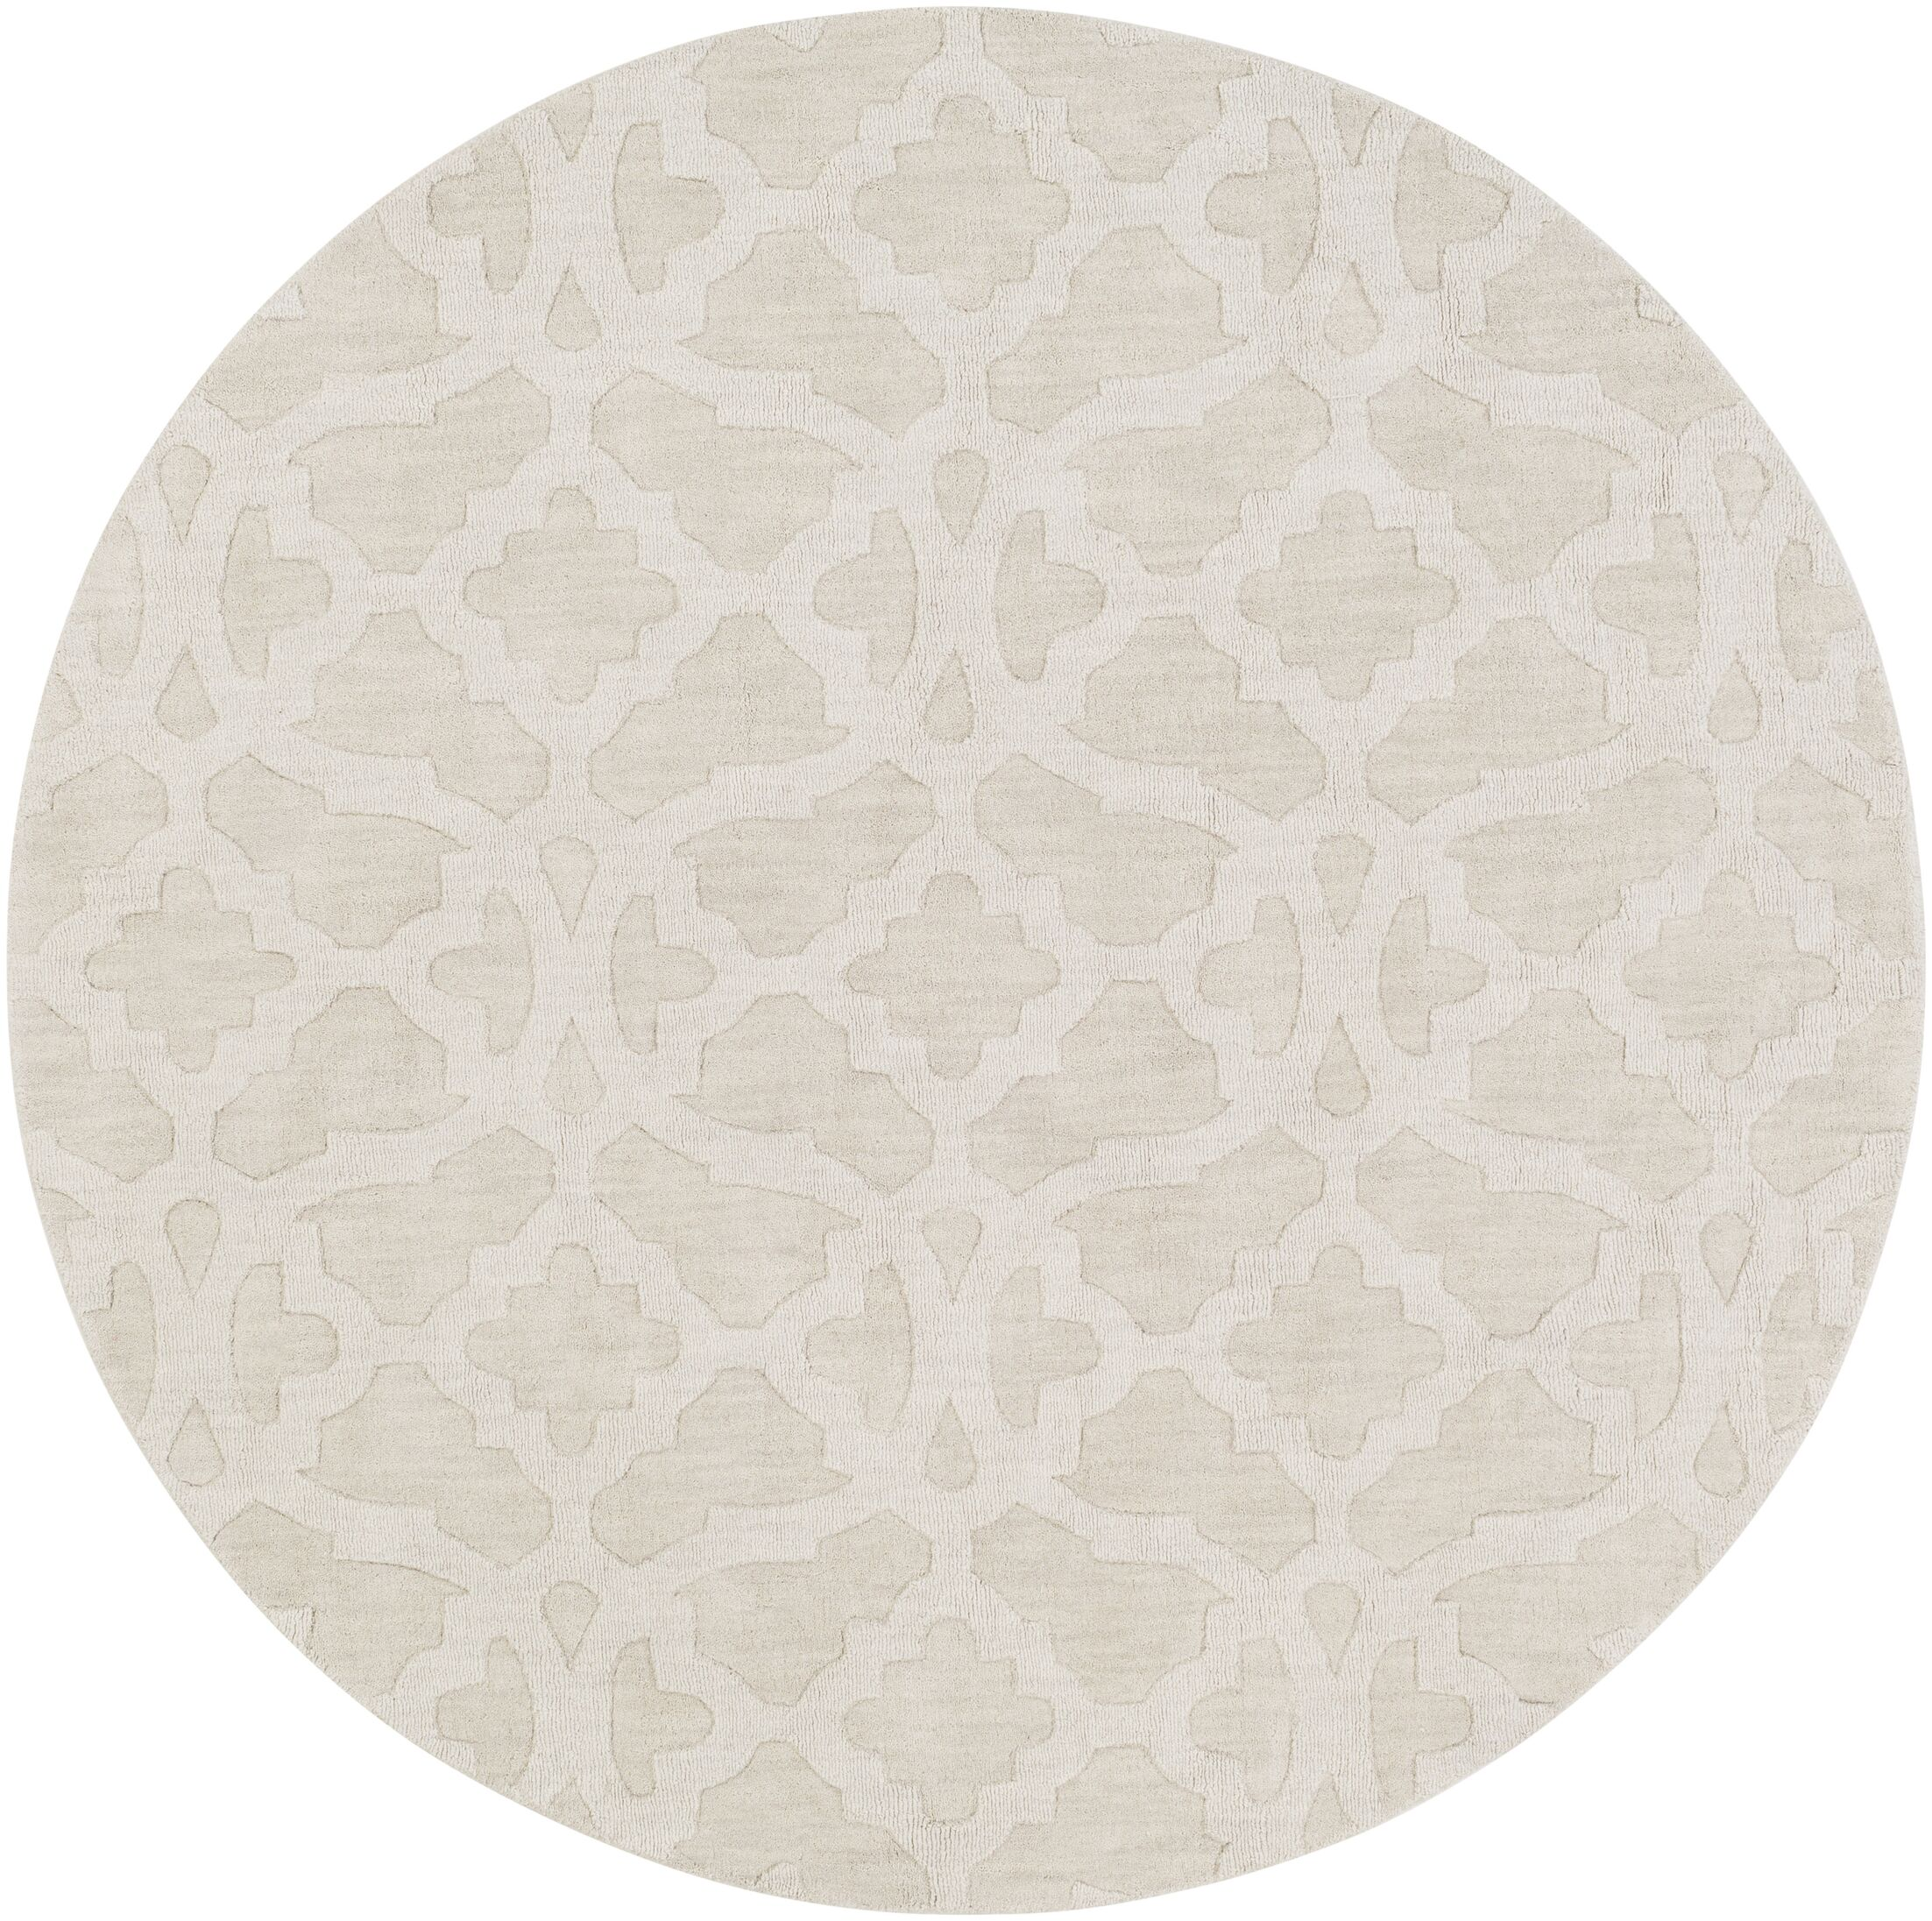 Dylan Handmade Ivory Area Rug Rug Size: Round 7'9